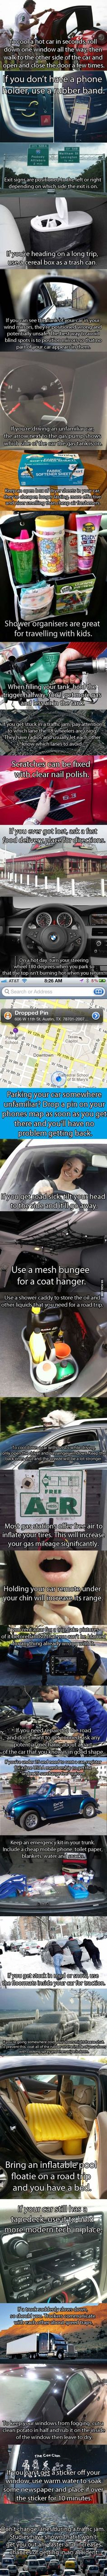 nice 32 Driving Hacks That Will Make You A Roadtripping Master - 9GAG  Long car ride fun and tips!